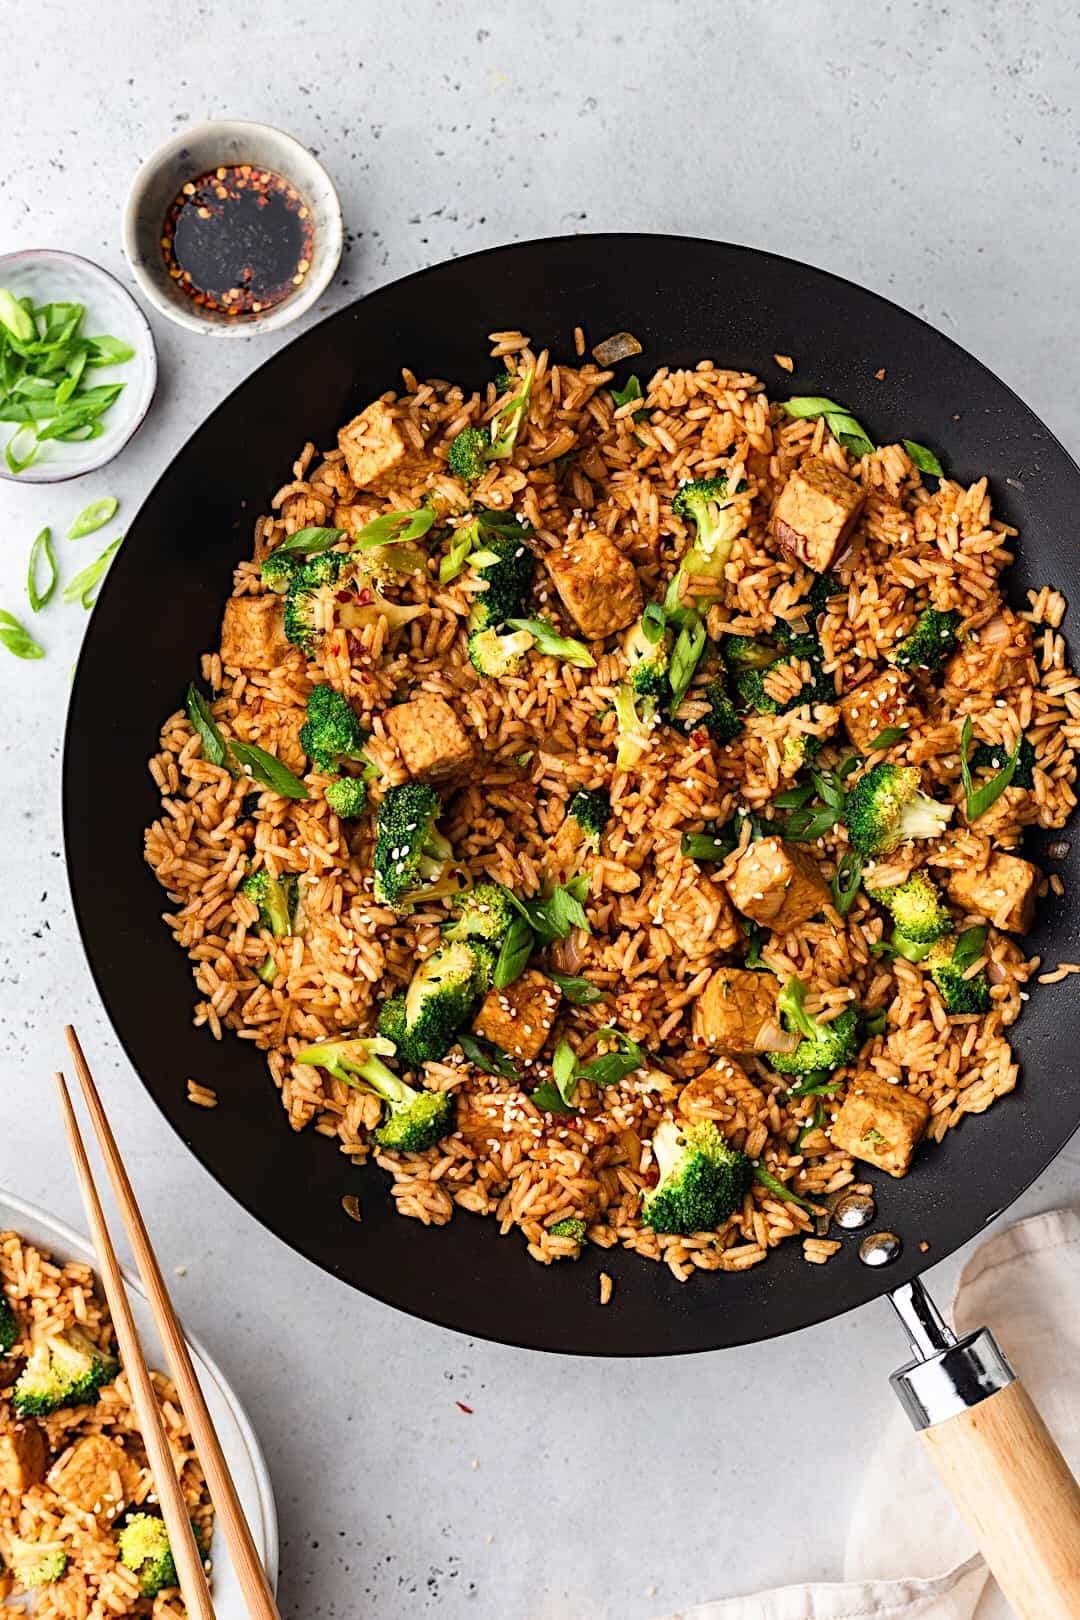 Vegan Tempeh Fried Rice in Wok #recipe #vegan #friedrice #chinese #tempeh #broccoli